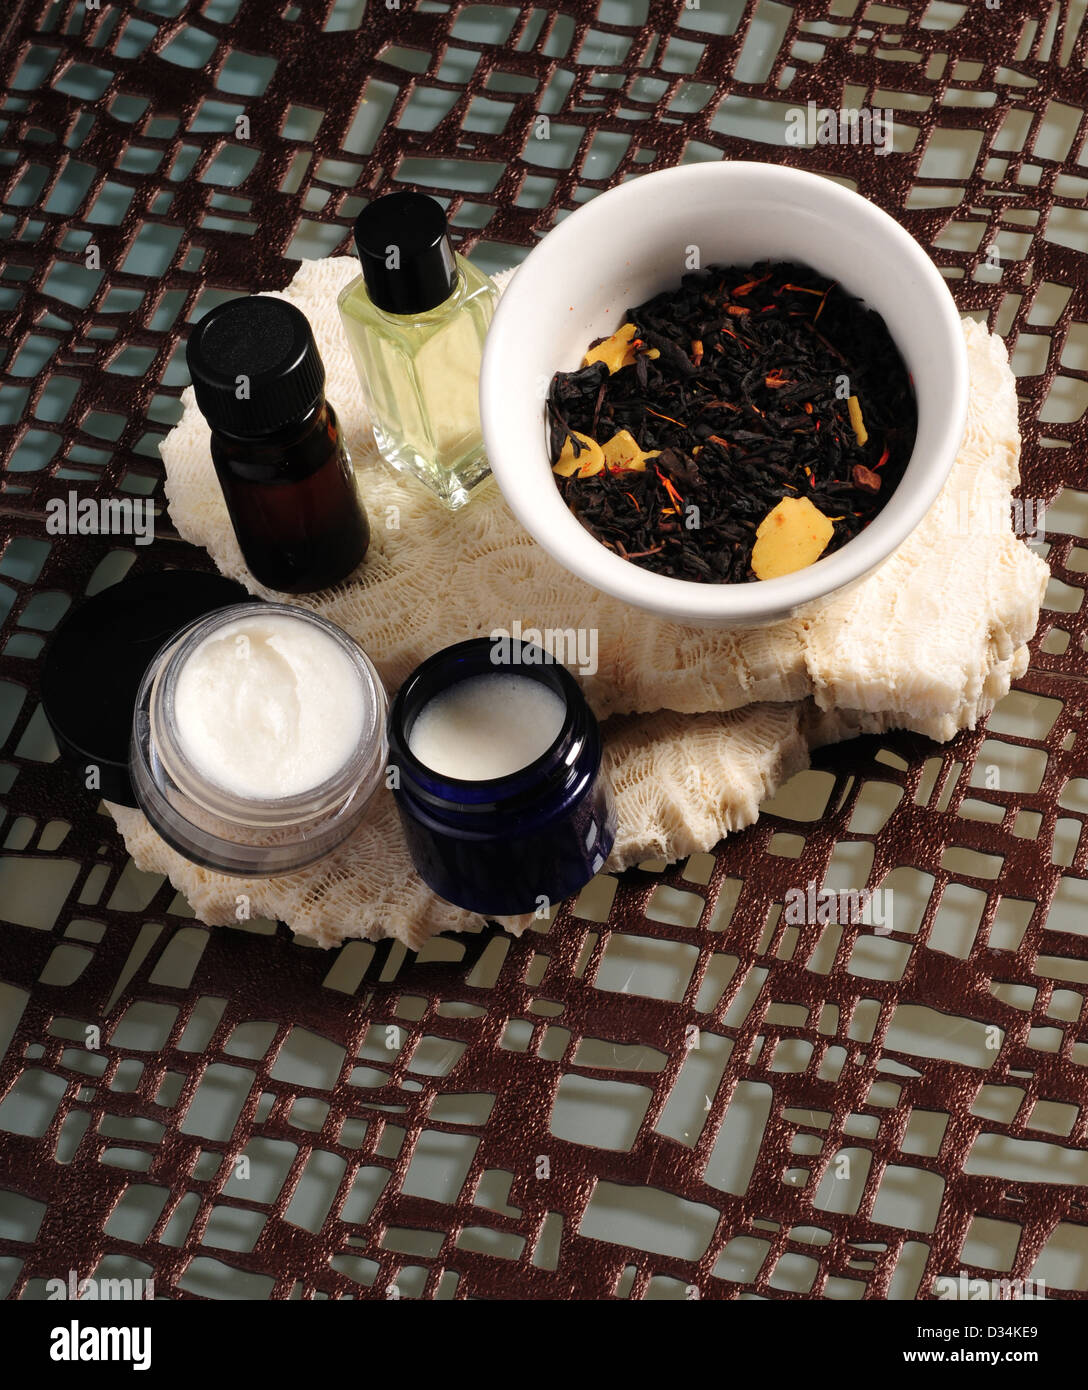 Aromatherapy with potpourri, essential oils and lotions - Stock Image